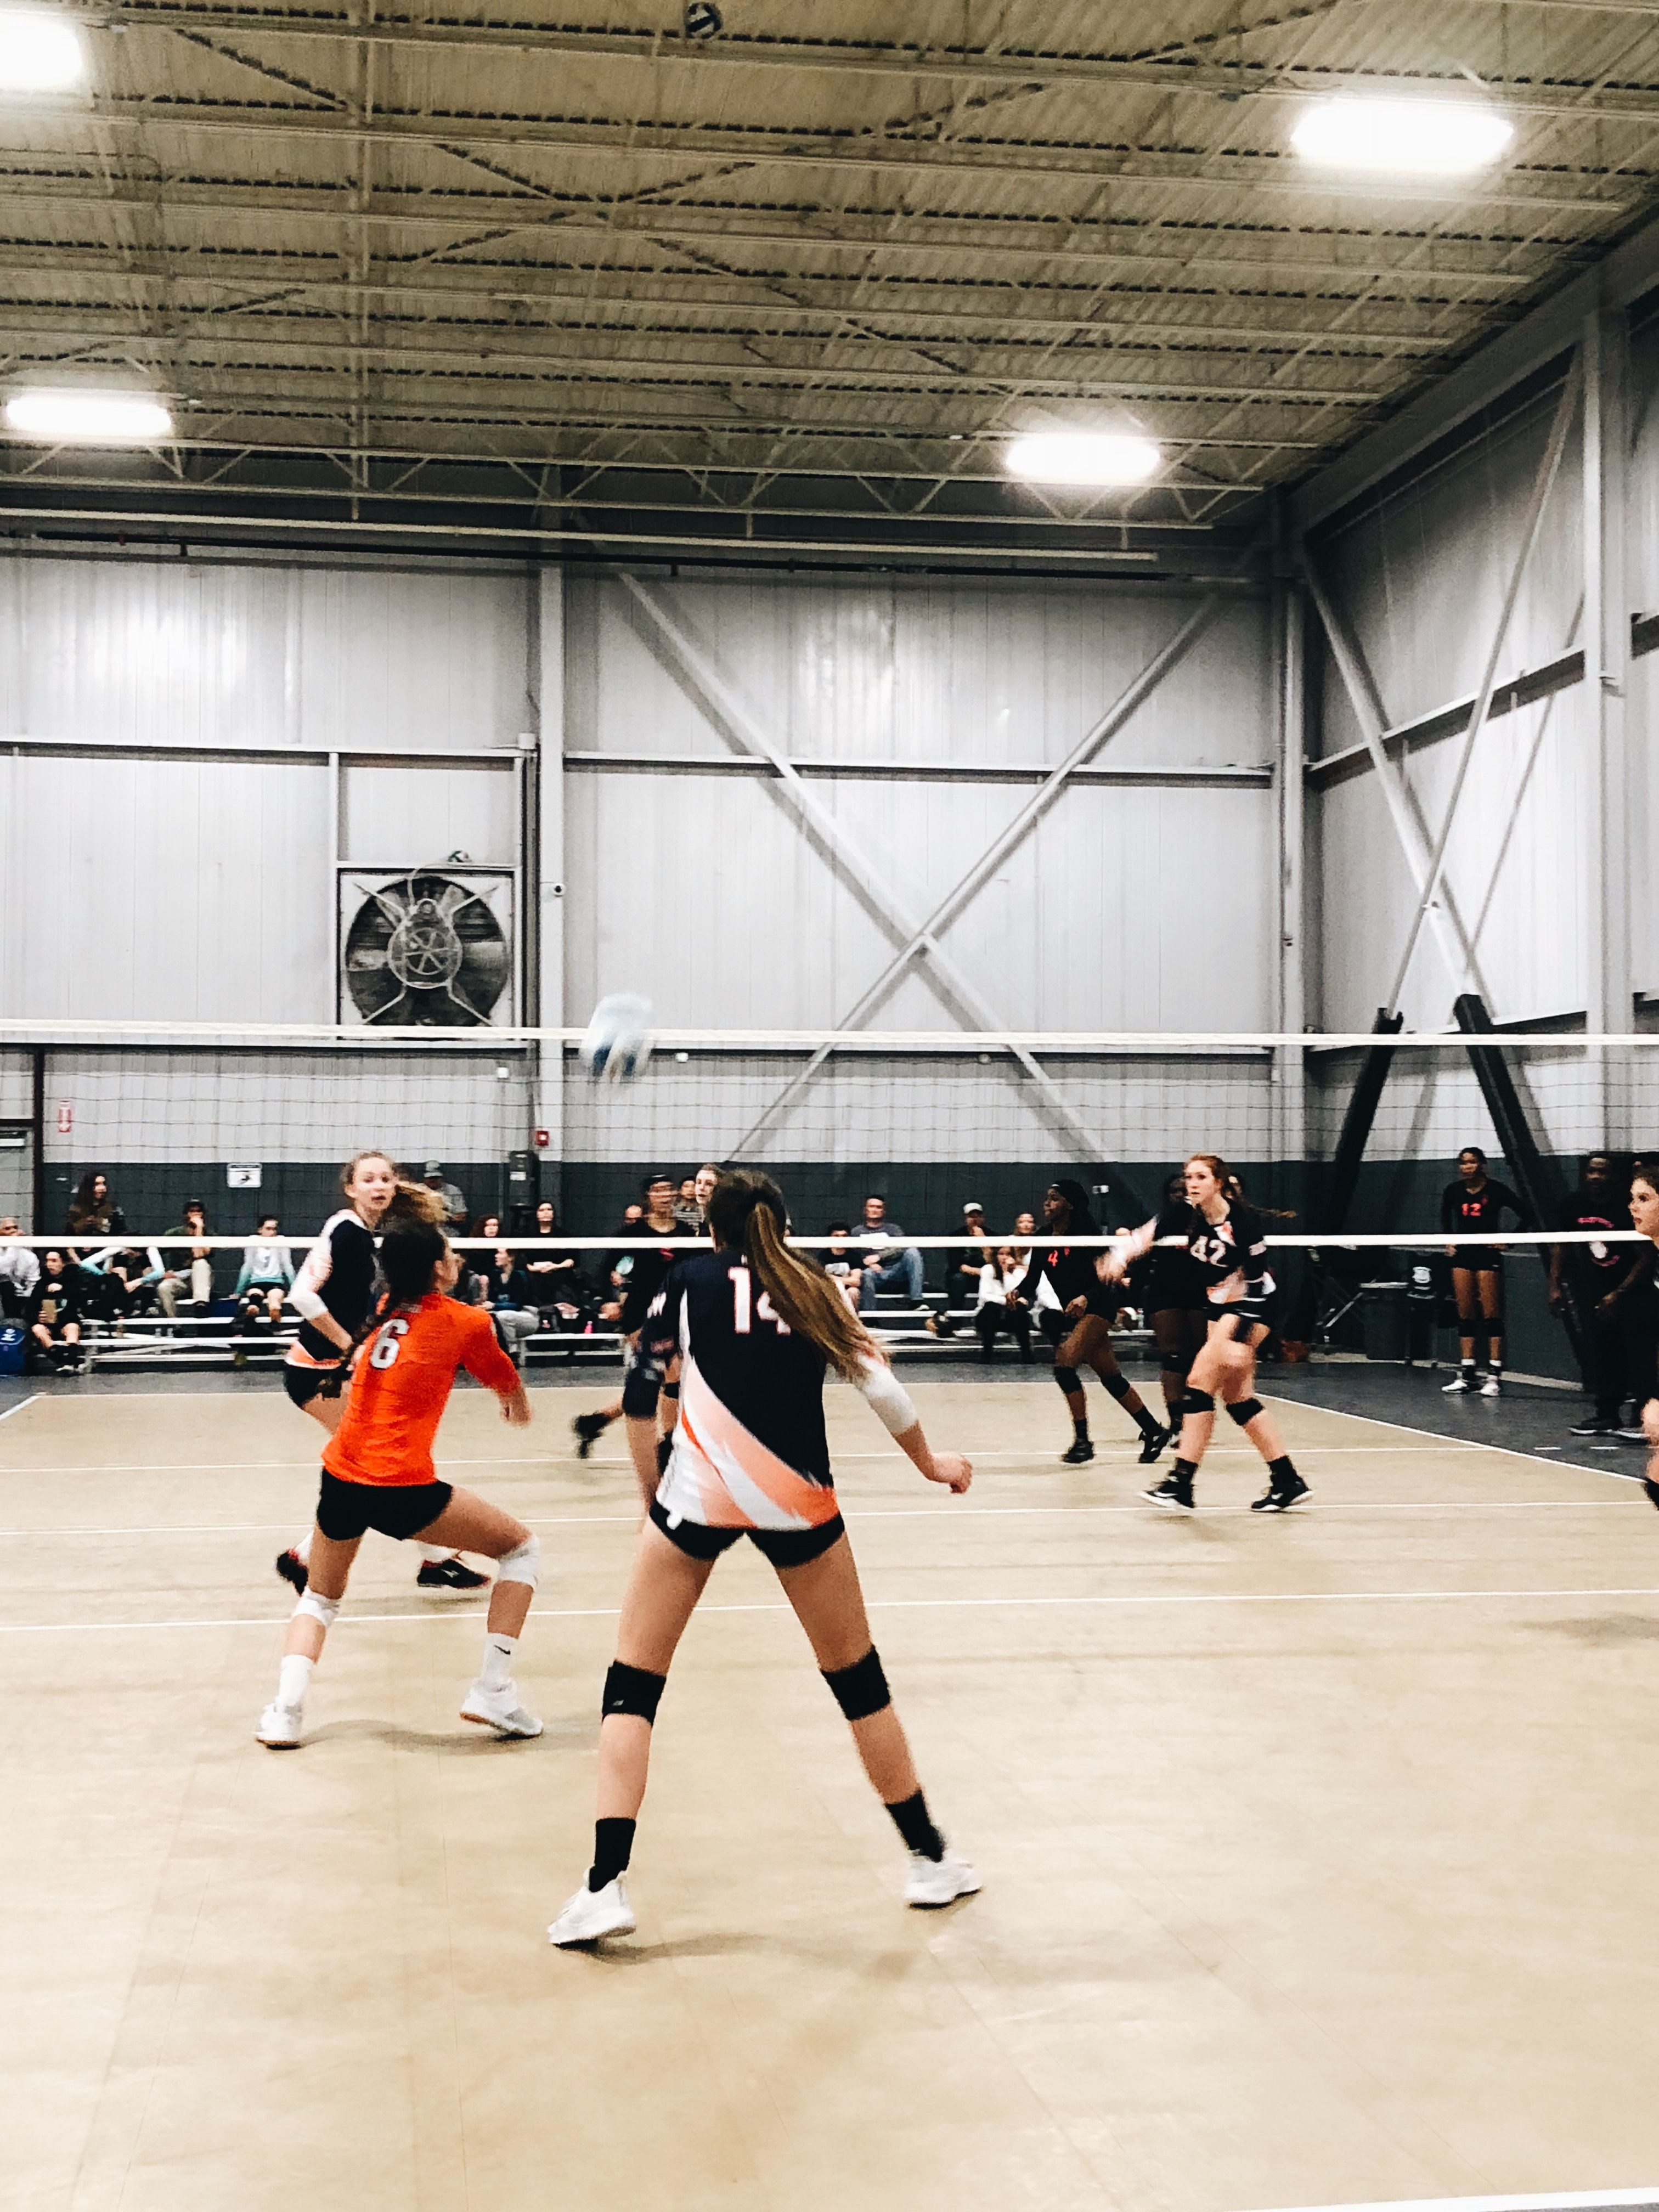 Pin by ⋆𝓔𝓜𝓘𝓛𝓨⋆ on Volleyball Volleyball pictures